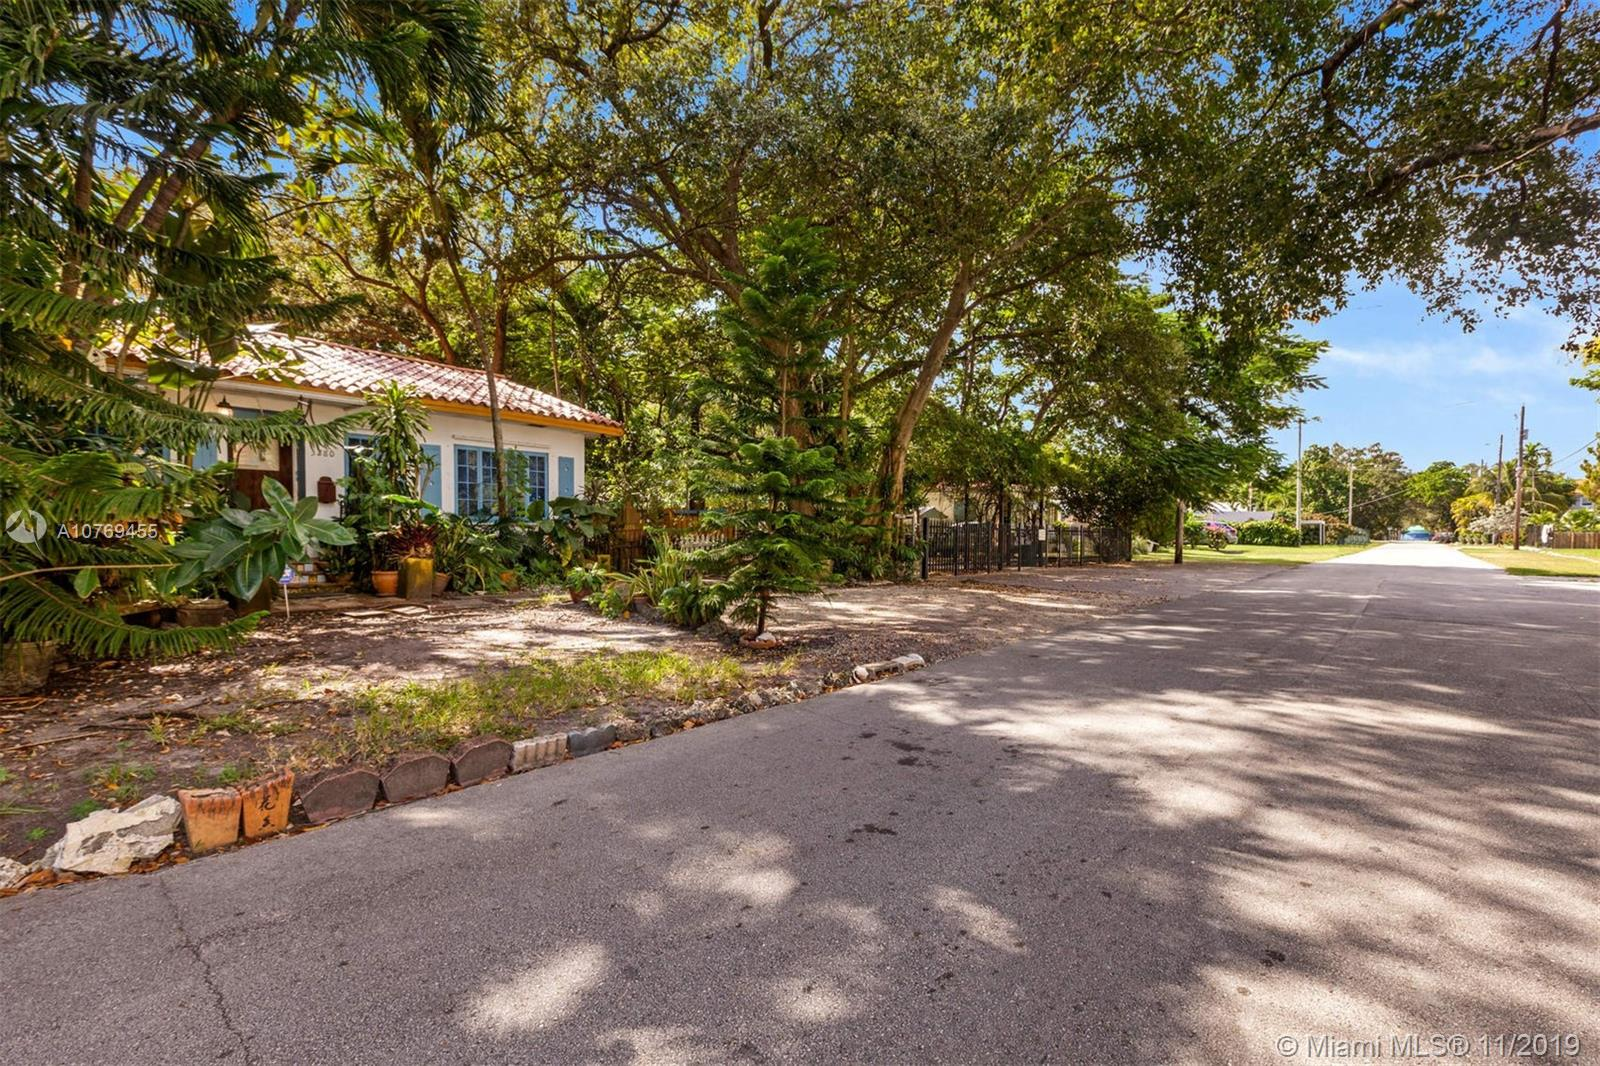 Unique opportunity to develop and build the home you have always imagined. Situated in the heart of Coconut Grove, you have the chance to remodel or build a new home to your preferred specifications and needs. Located next to Heritage Garden allows for ultimate privacy with no neighbors on the right side of the property. The neighborhood consists of newly built million dollar homes, top performing schools, fine dining, shops, movie theater and Marinas. Ideal location, close to Brickell, downtown Miami, Coral Gables, Wynwood, Miami Beach and Miami International Airport.